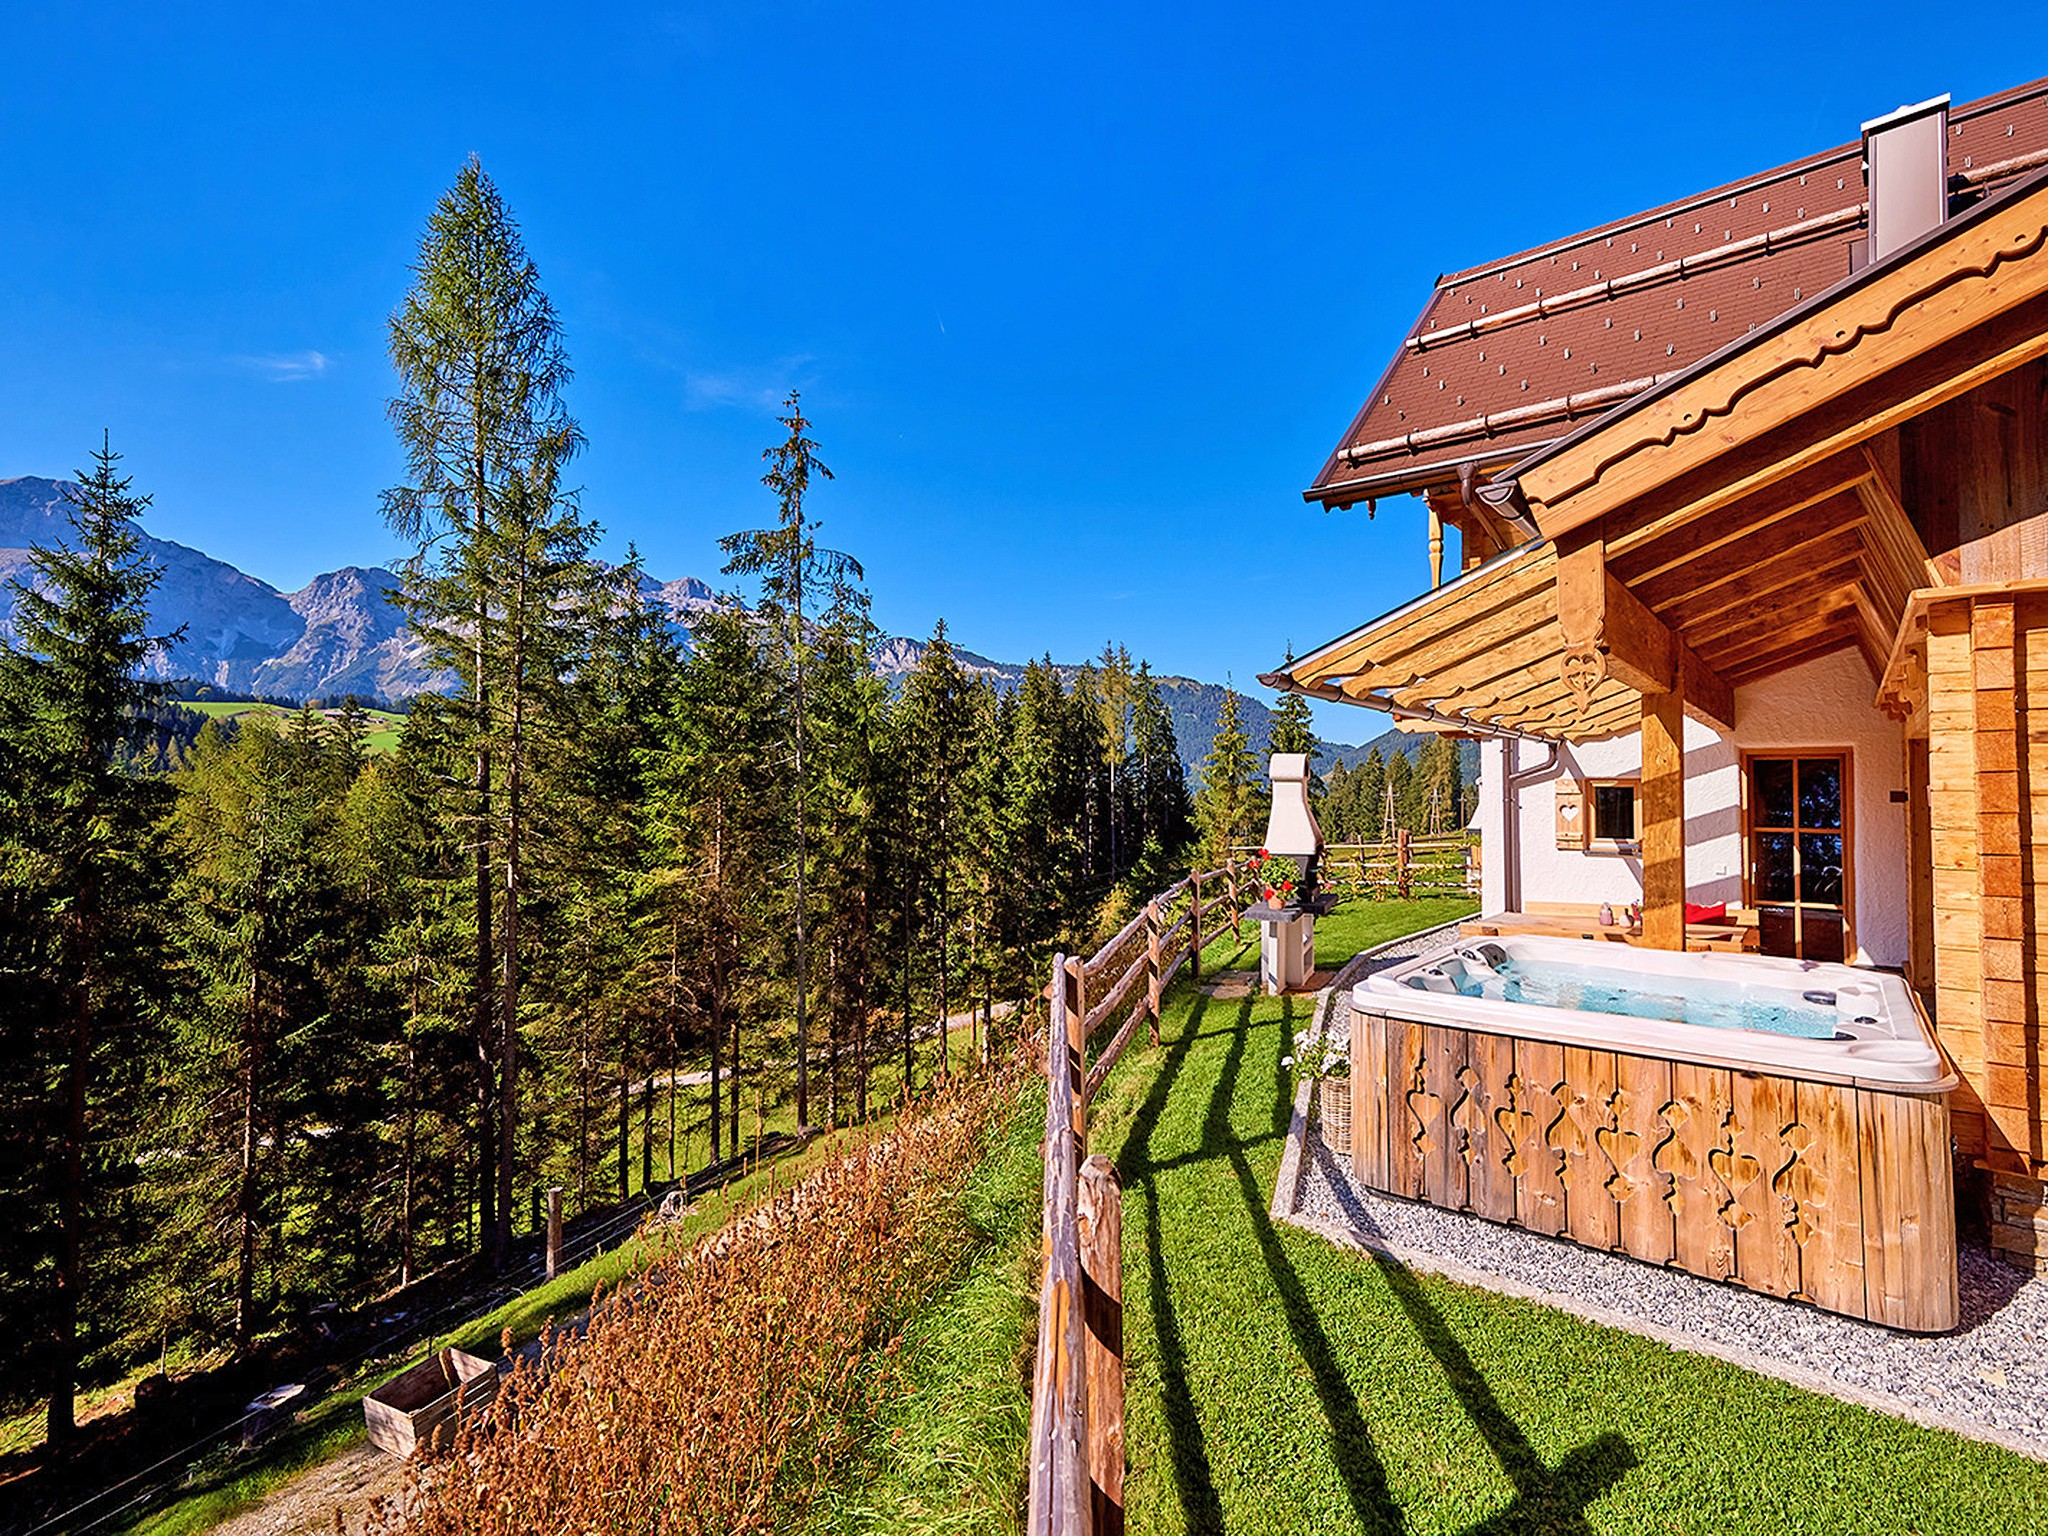 Dachstein Dream Lodge - Panoramablick